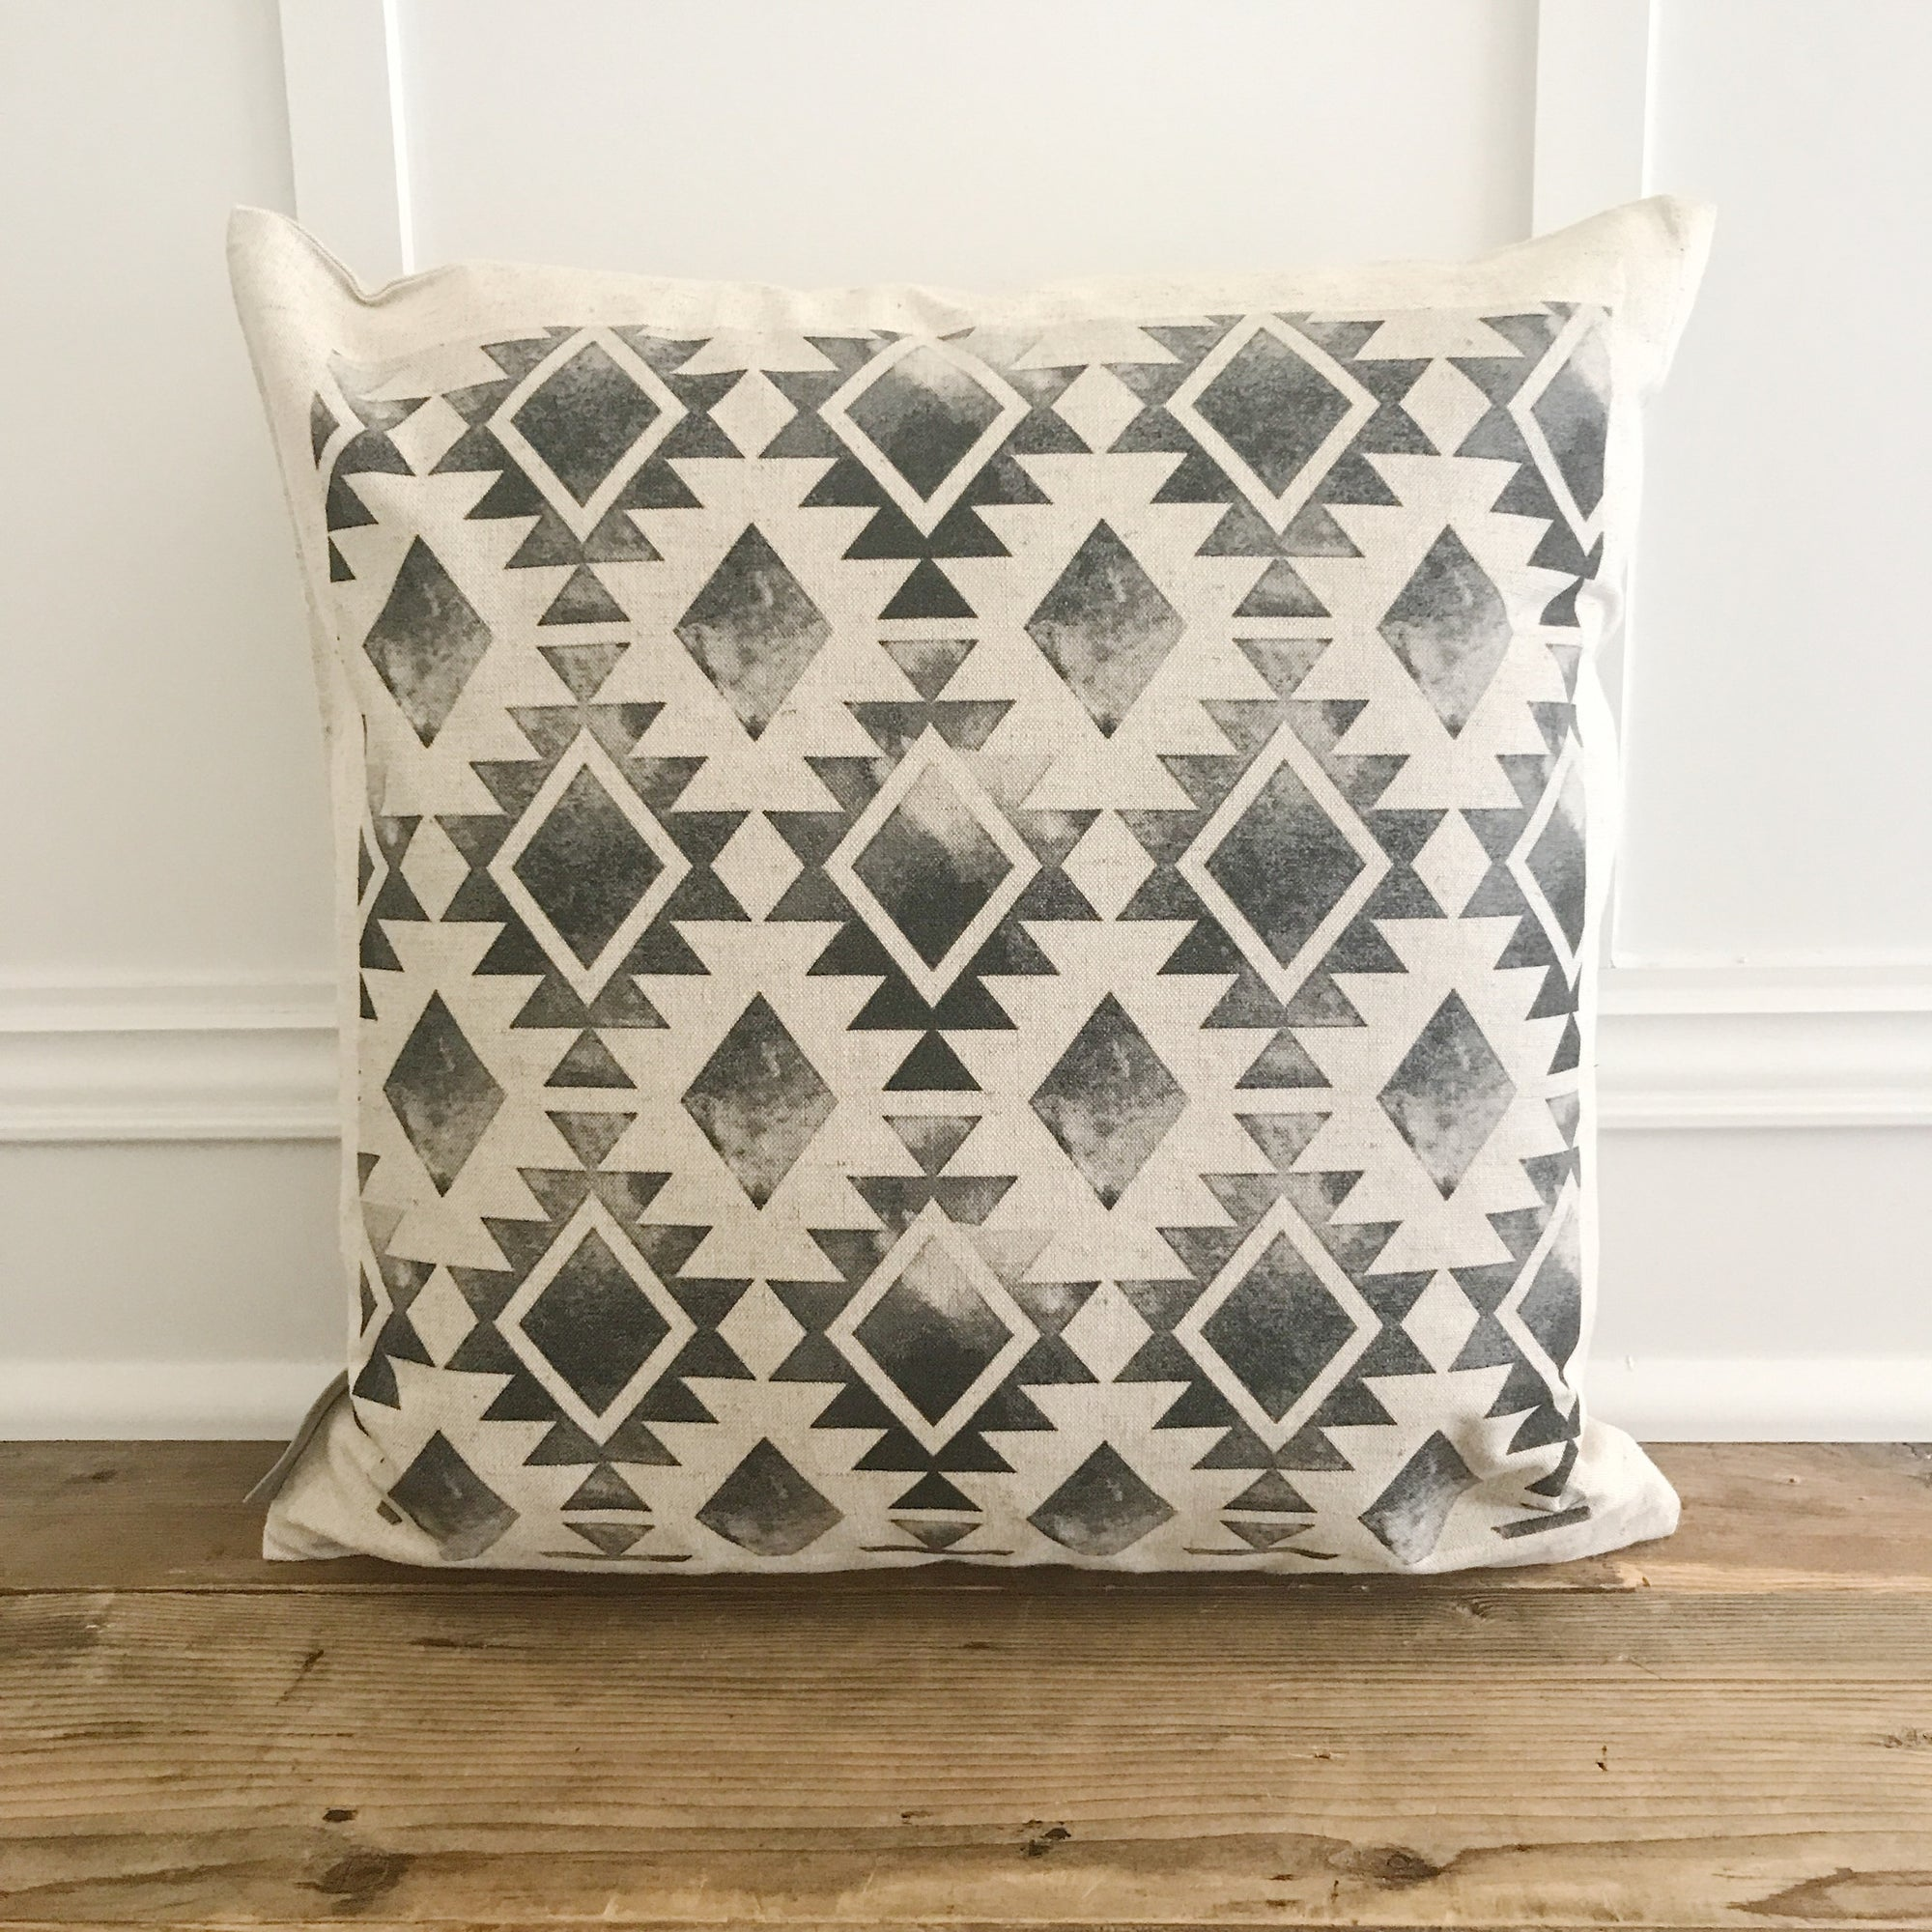 Aztec Pillow Cover (Design 6) - Linen and Ivory